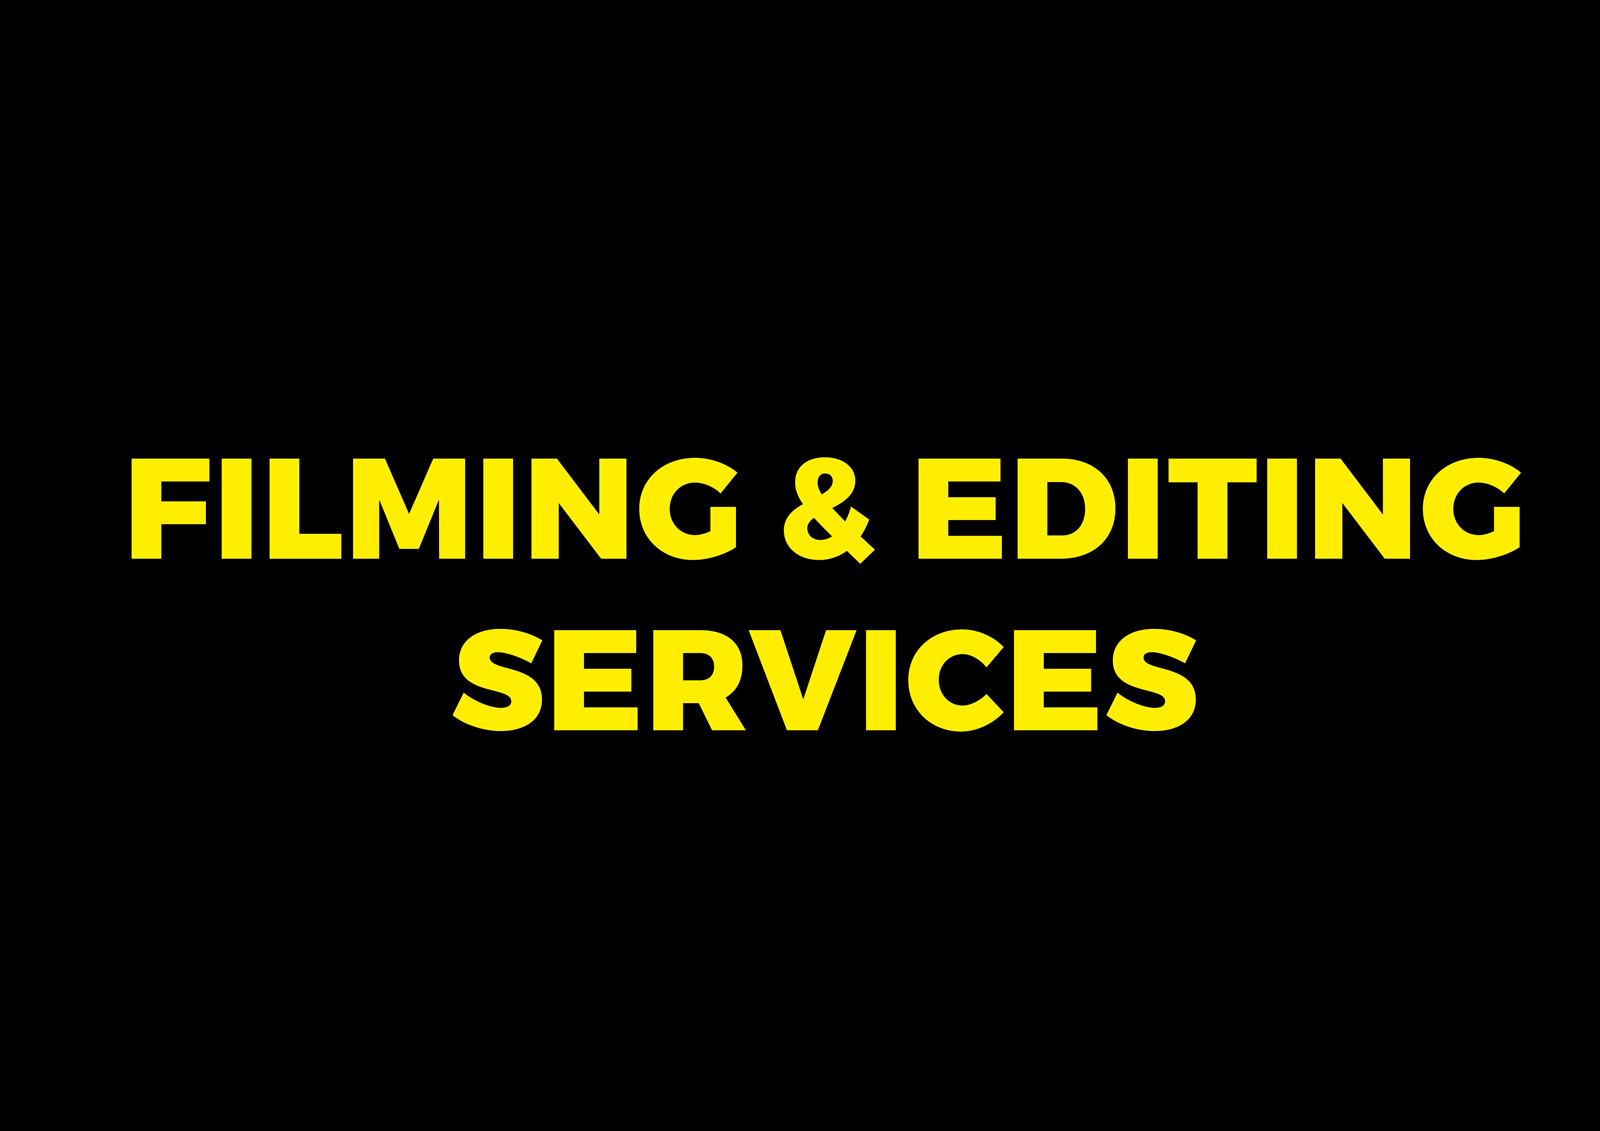 FILMING-&-EDITING-SERVICES-WEB.jpg